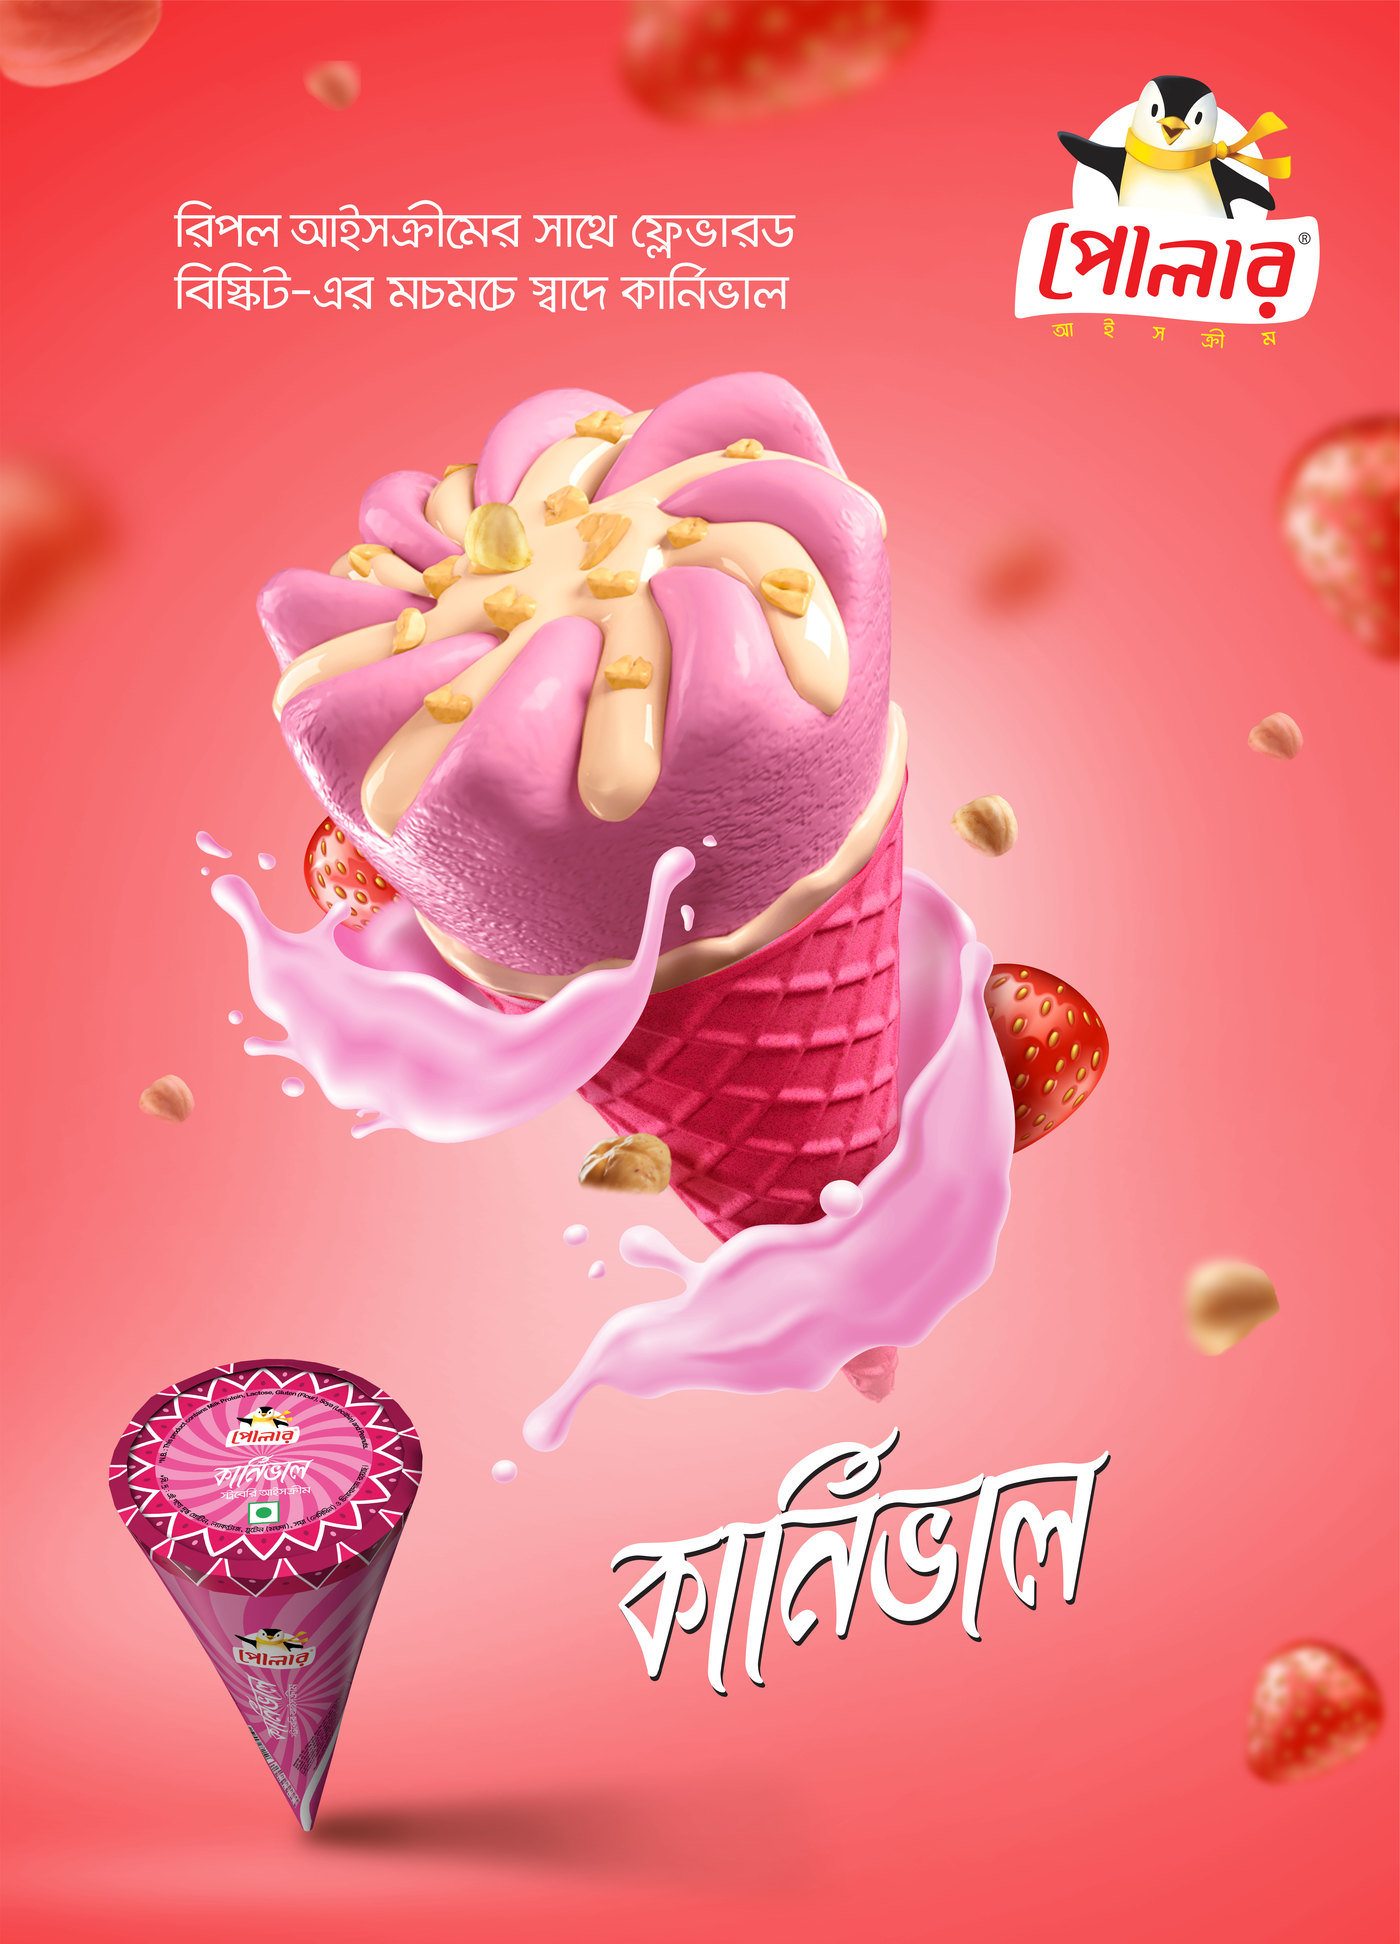 polar ice cream posters by nafis ahmed